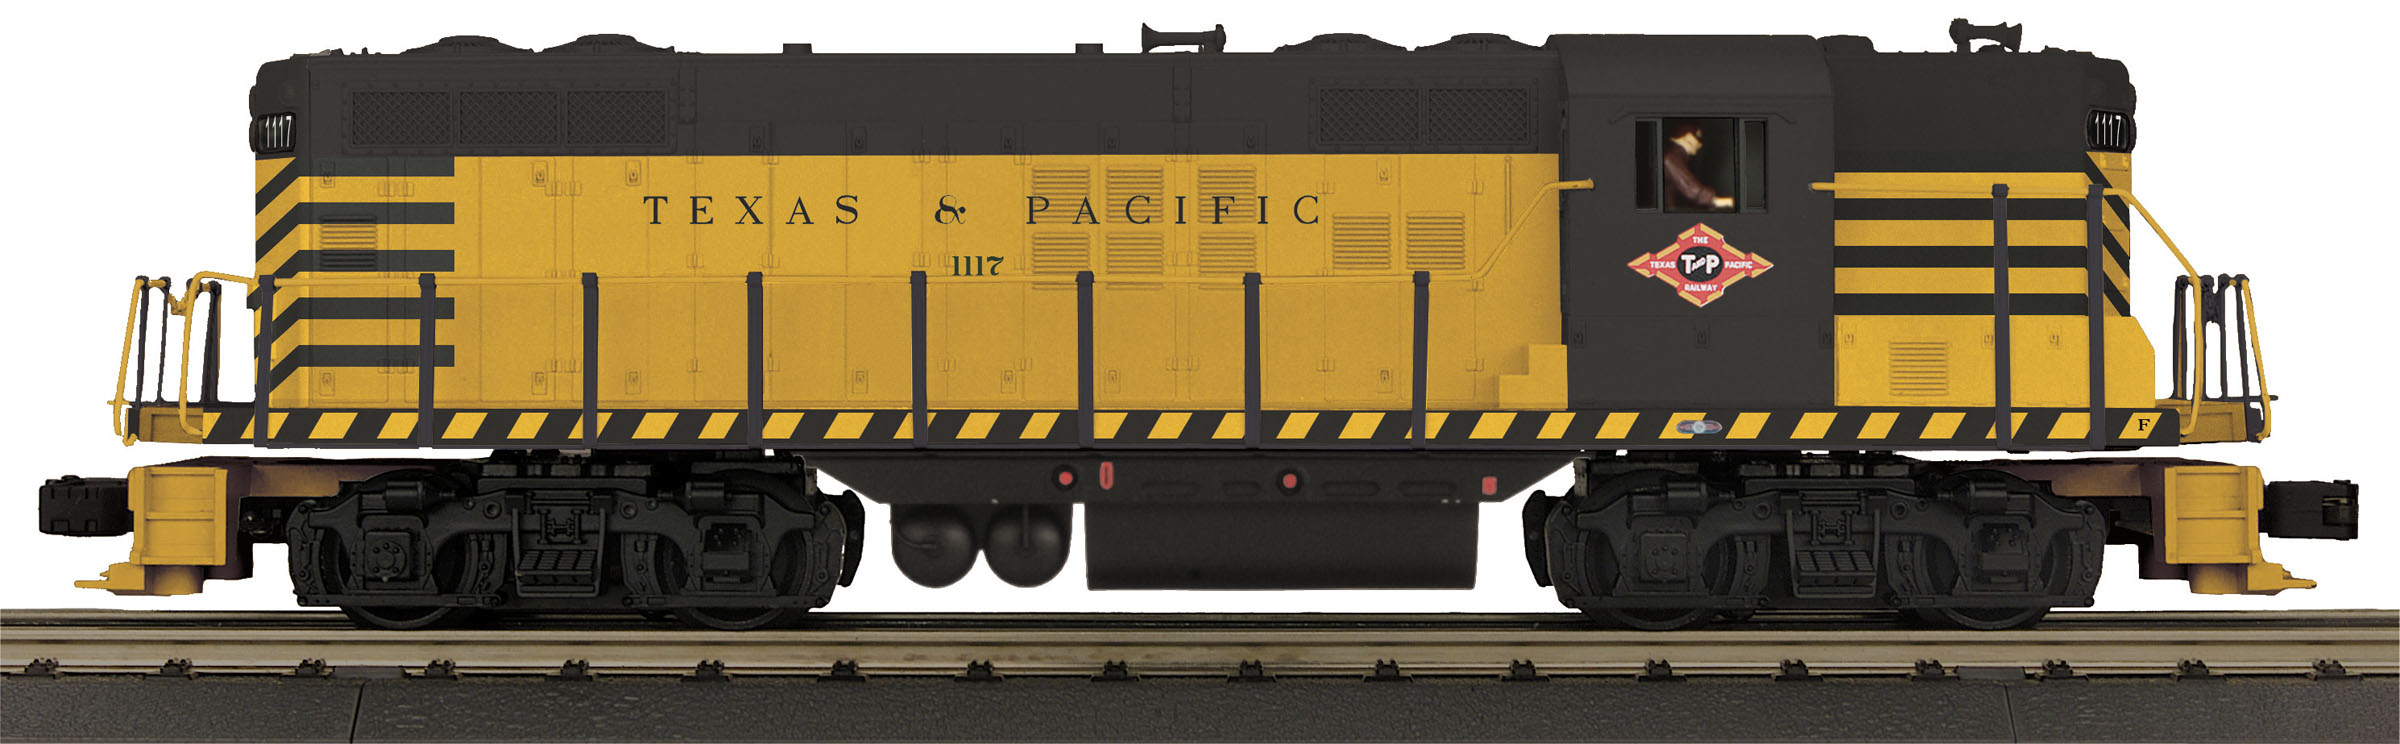 30-20060-1 | MTH ELECTRIC TRAINS